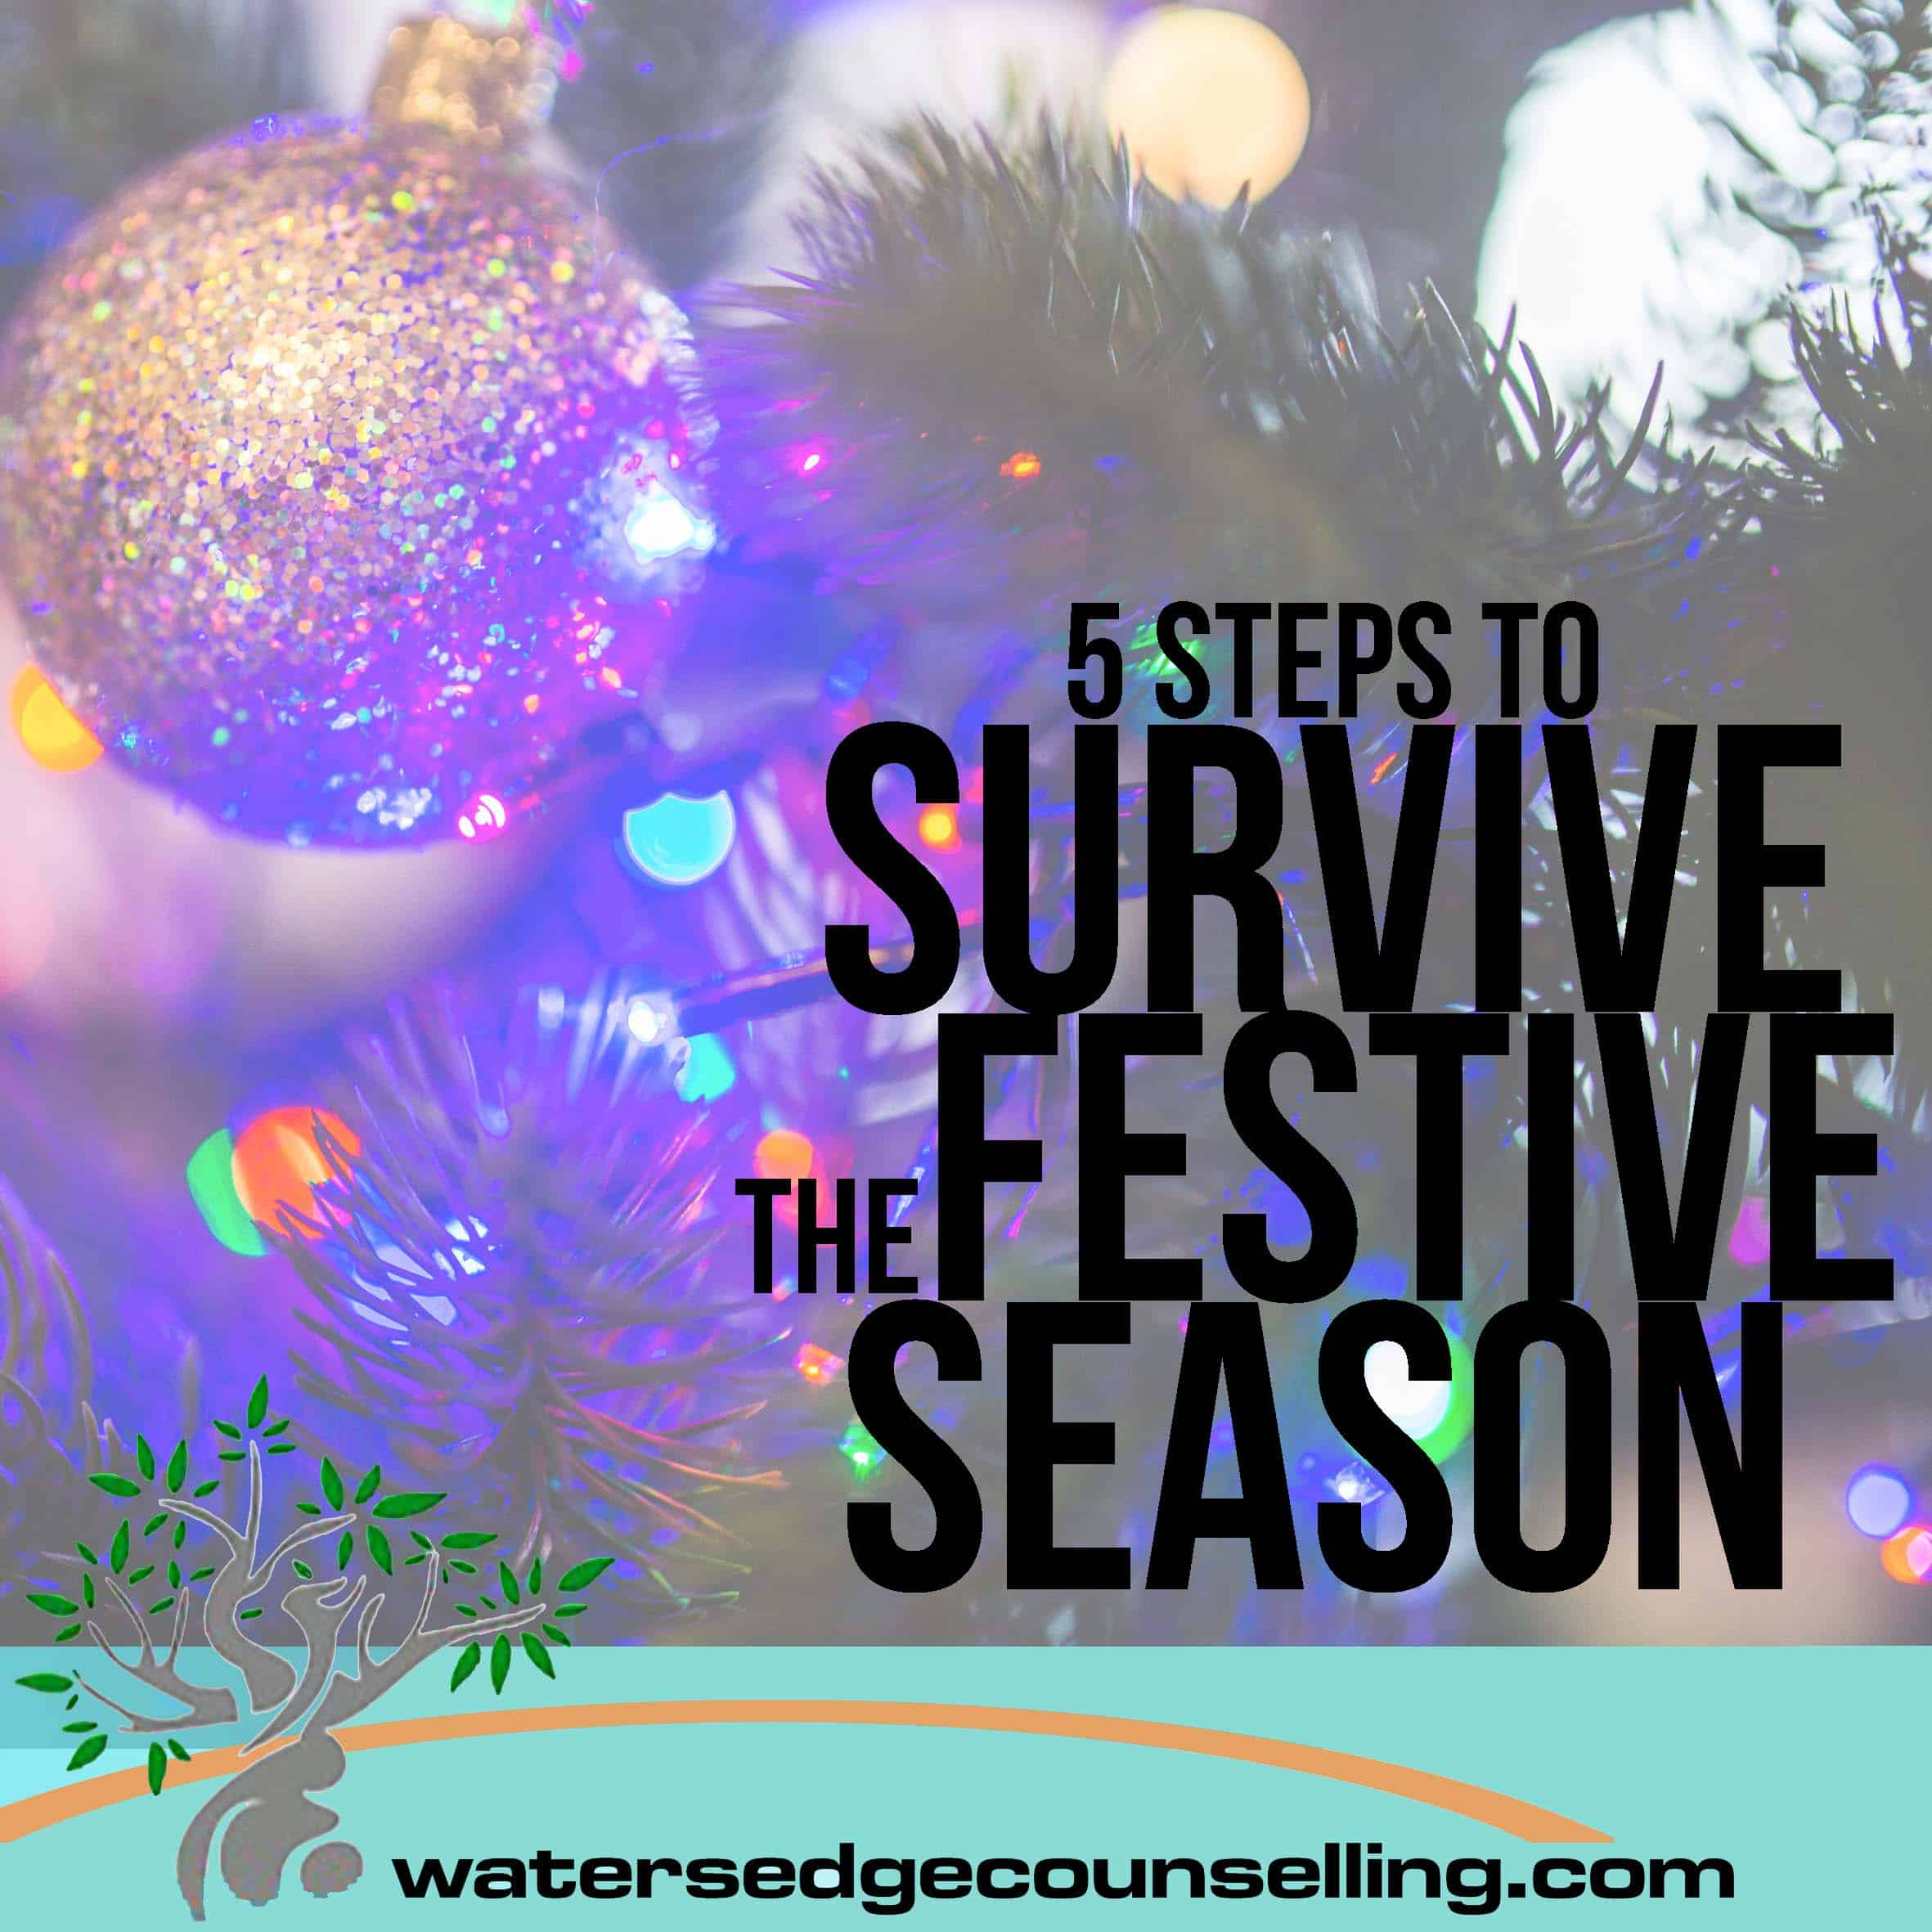 5 Steps to Survive the Festive Season